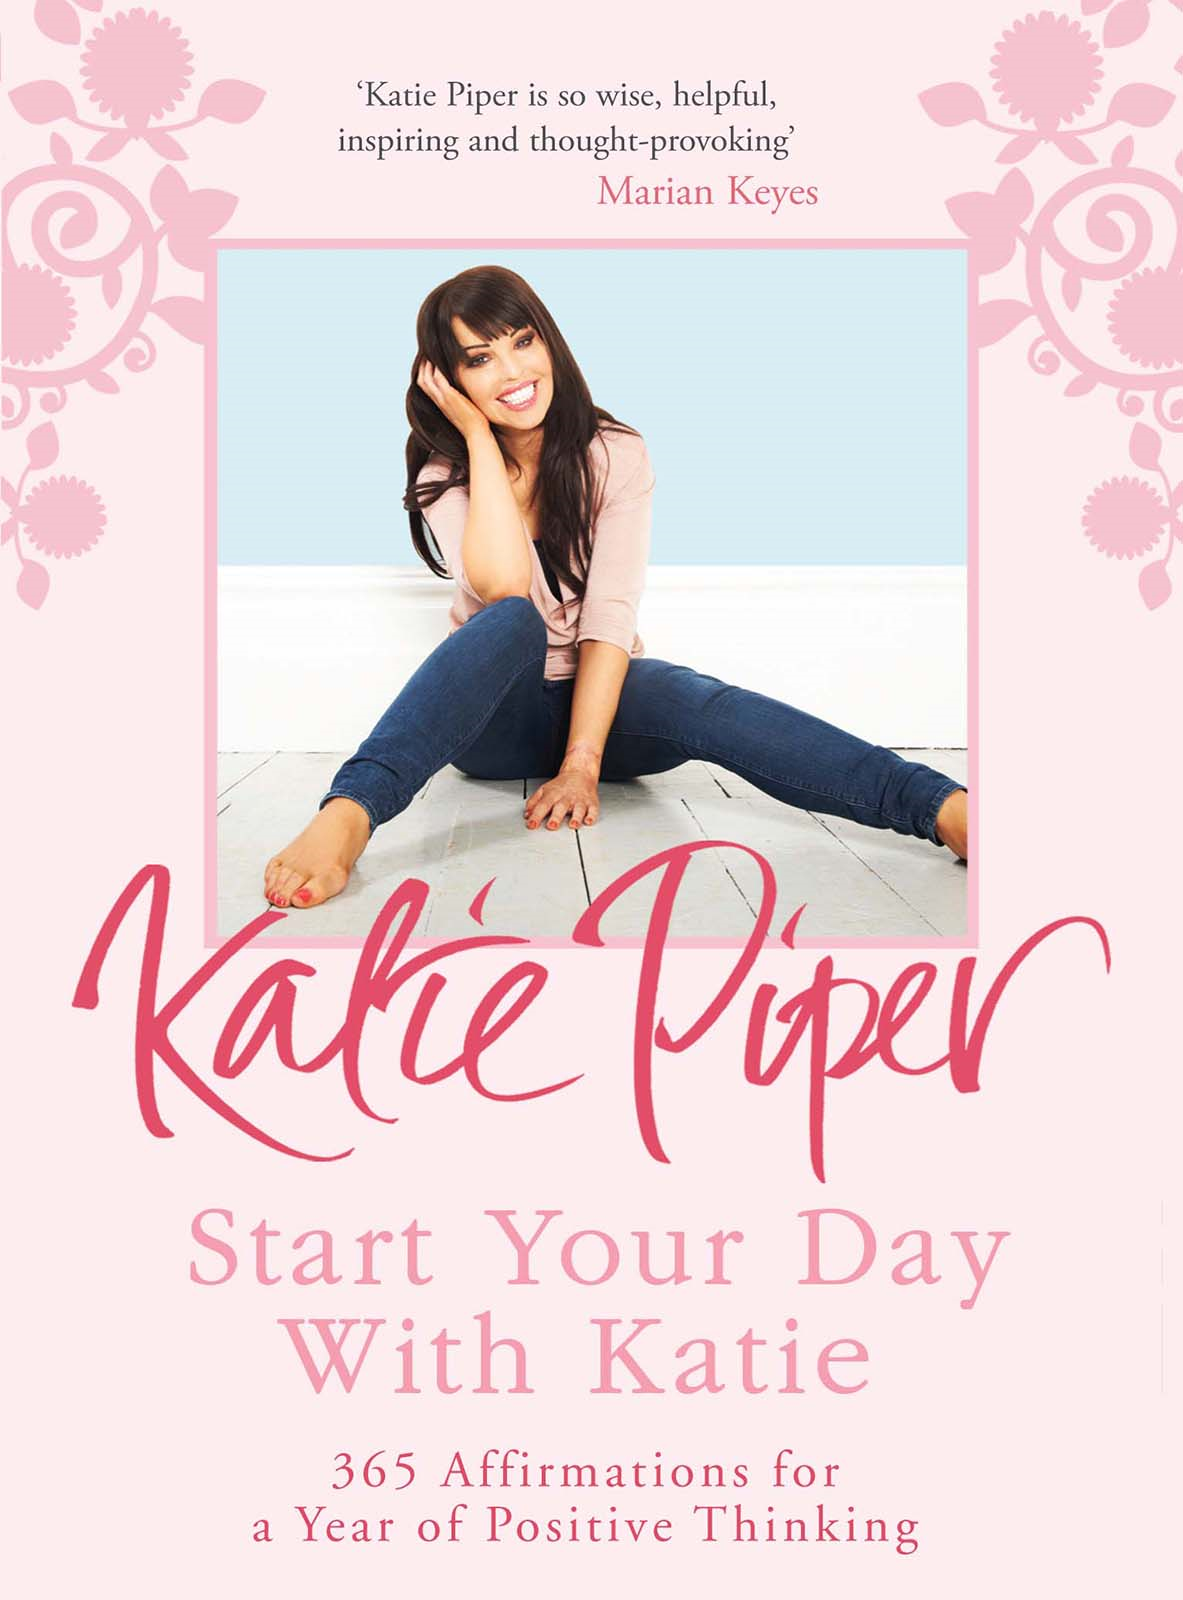 Start Your Day With Katie: 365 Affirmations for a Year of Positive Thinking 365 Affirmations for a Year of Positive Thinking